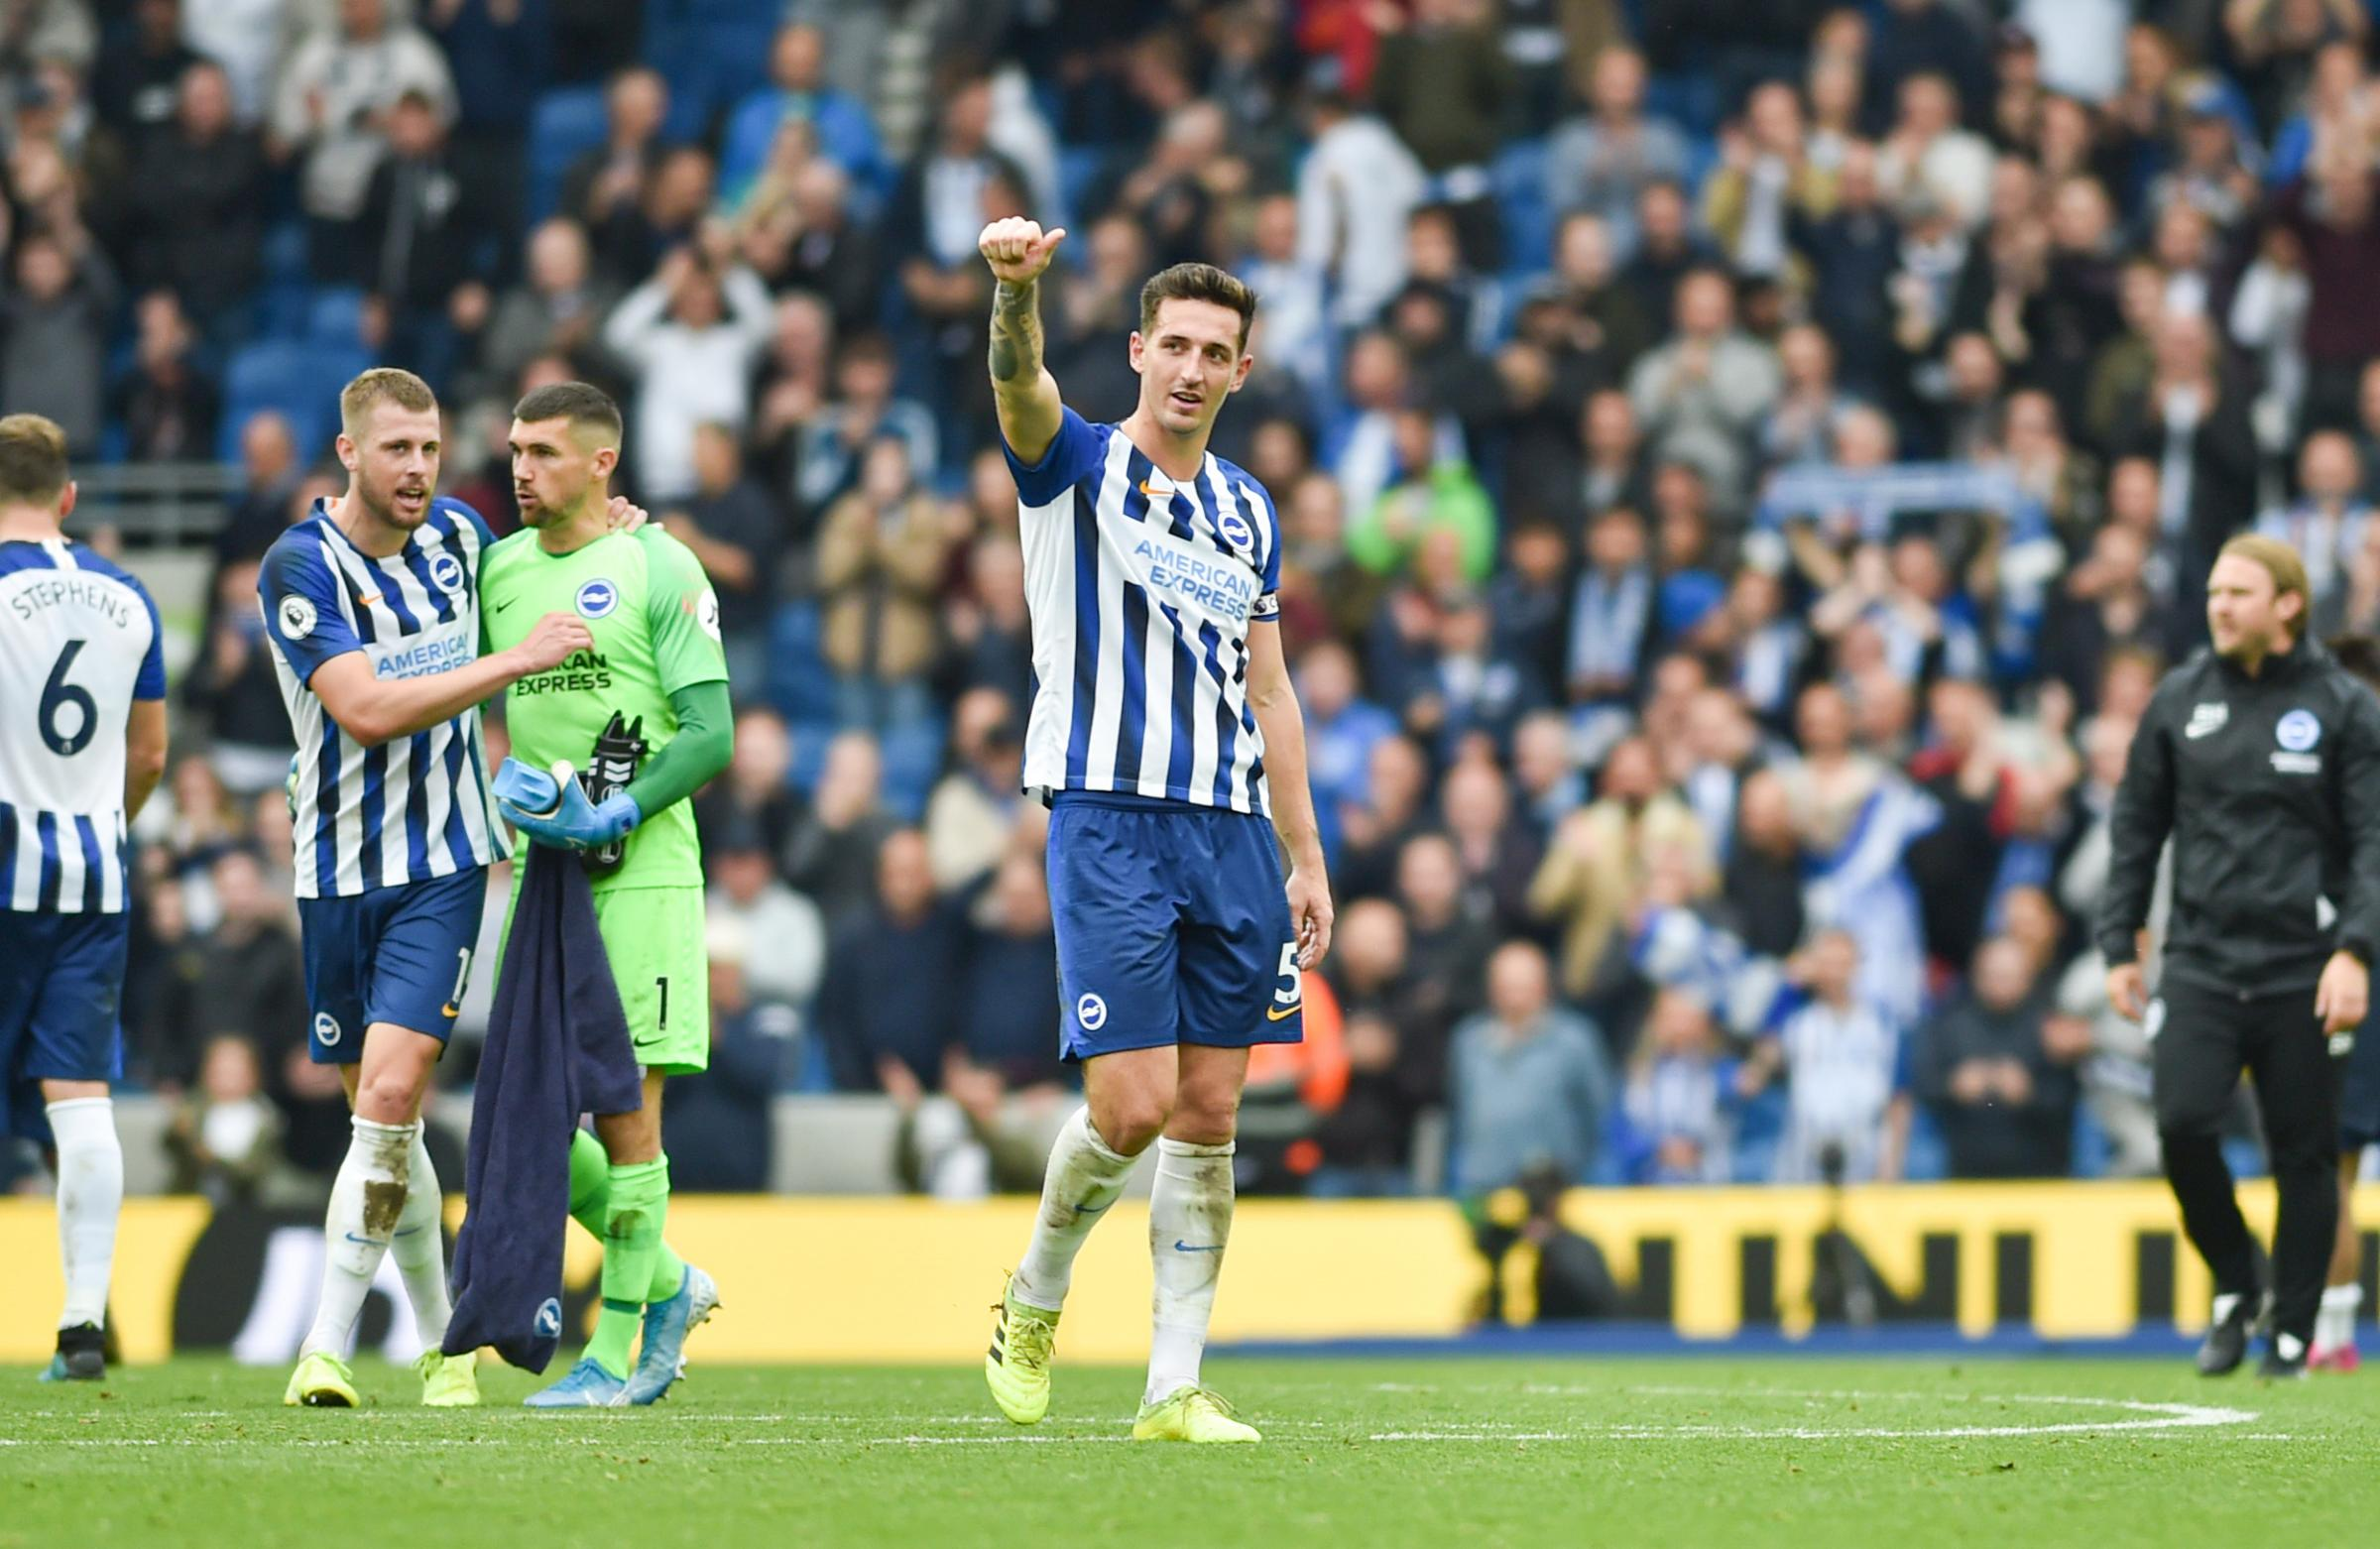 Maty Ryan says Lewis Dunk has moved to 'another level'